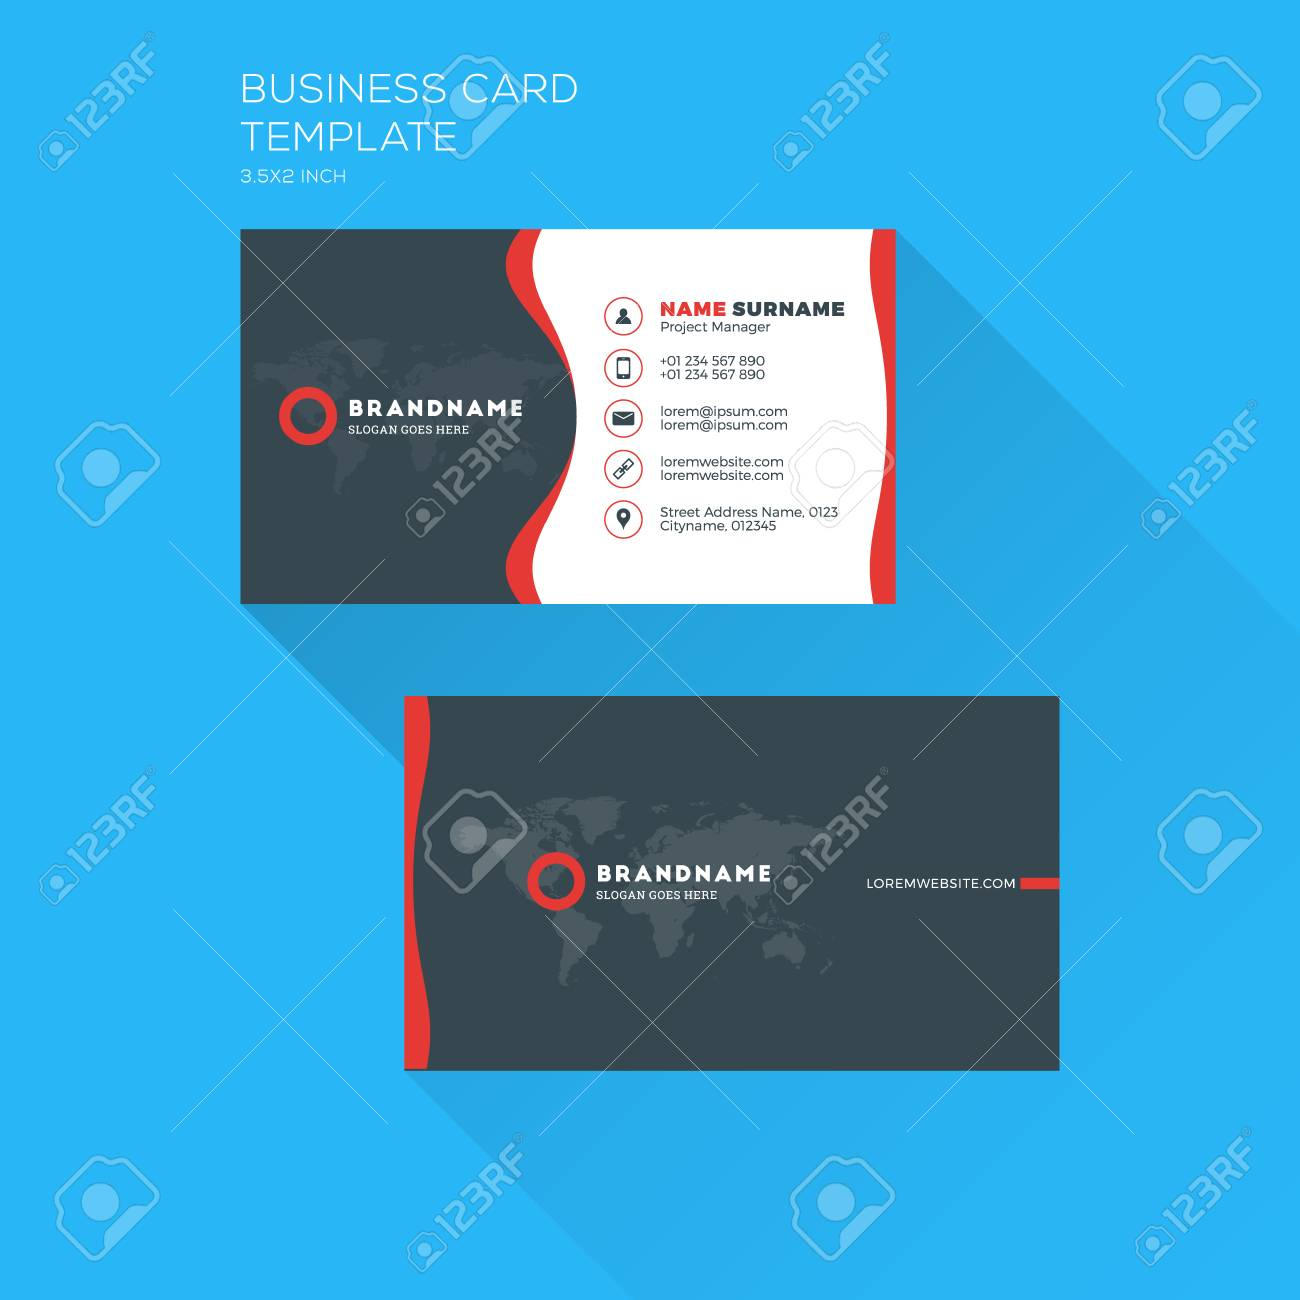 Corporate business card print template personal visiting card corporate business card print template personal visiting card with company clean flat design cheaphphosting Gallery